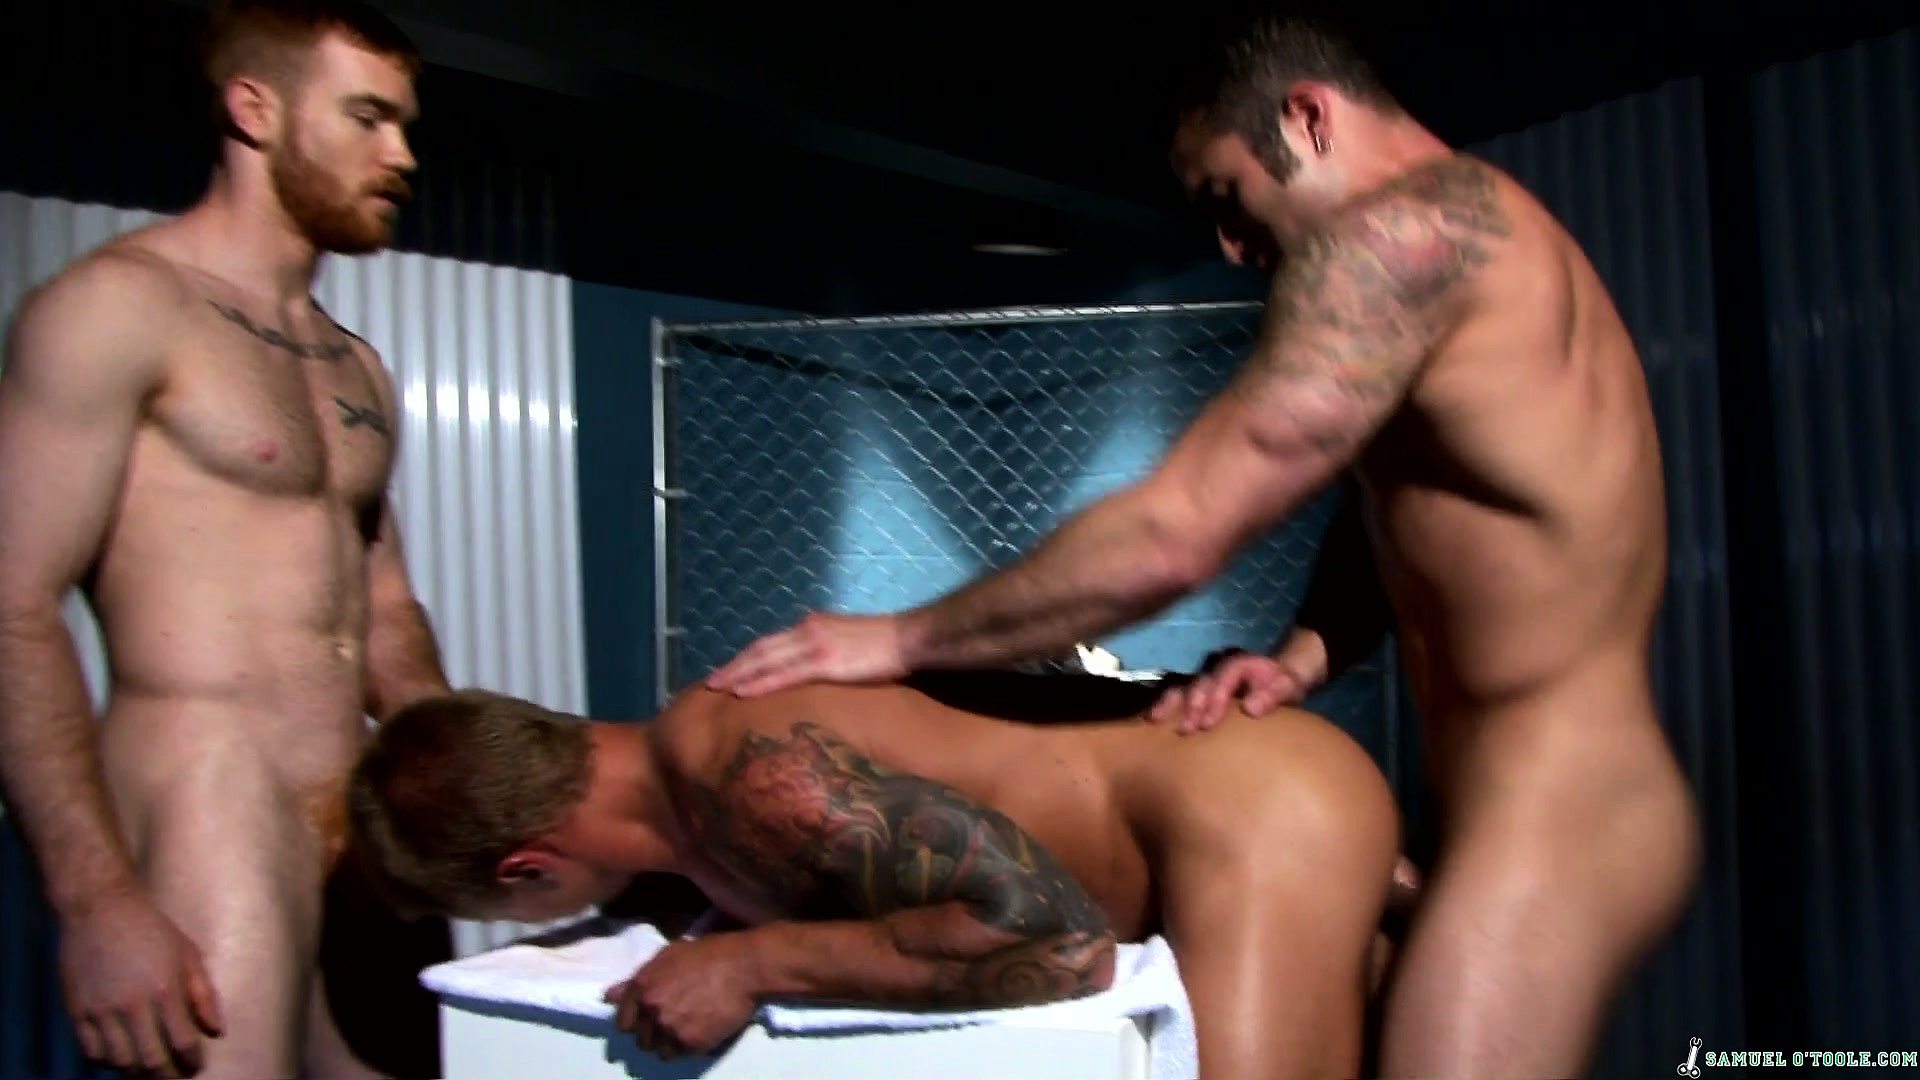 Porn Tube of He Gets A Cock Up His Ass, The Other Dude Jerks, And He Gets Cum On His Ass